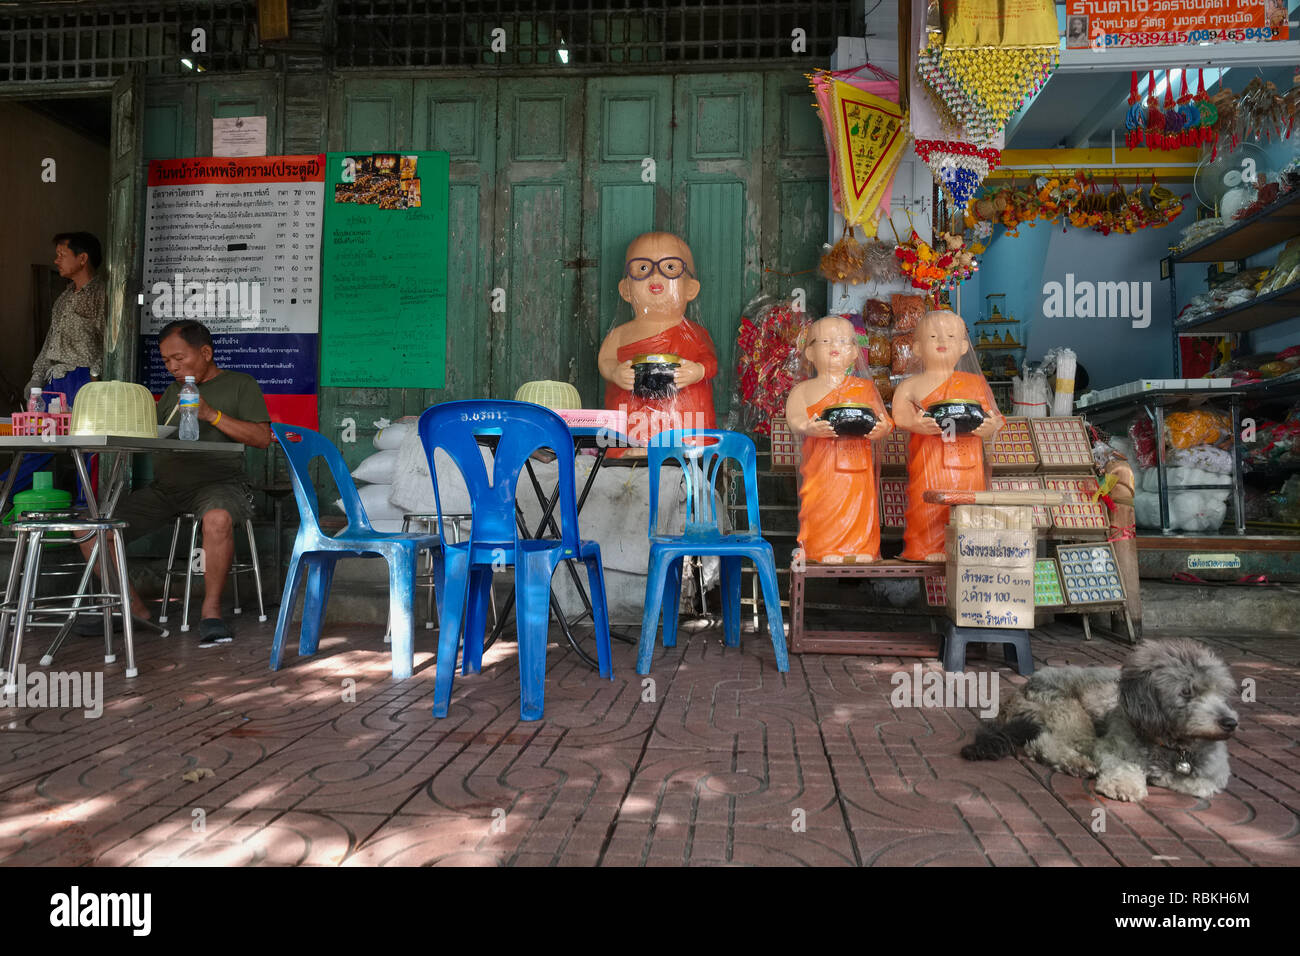 Atreet scene in Mahachai Rd., Bangkok, Thailand: a food stall and a shop selling Buddhist paraphernalia including monks' figures, guarded by a poodle - Stock Image